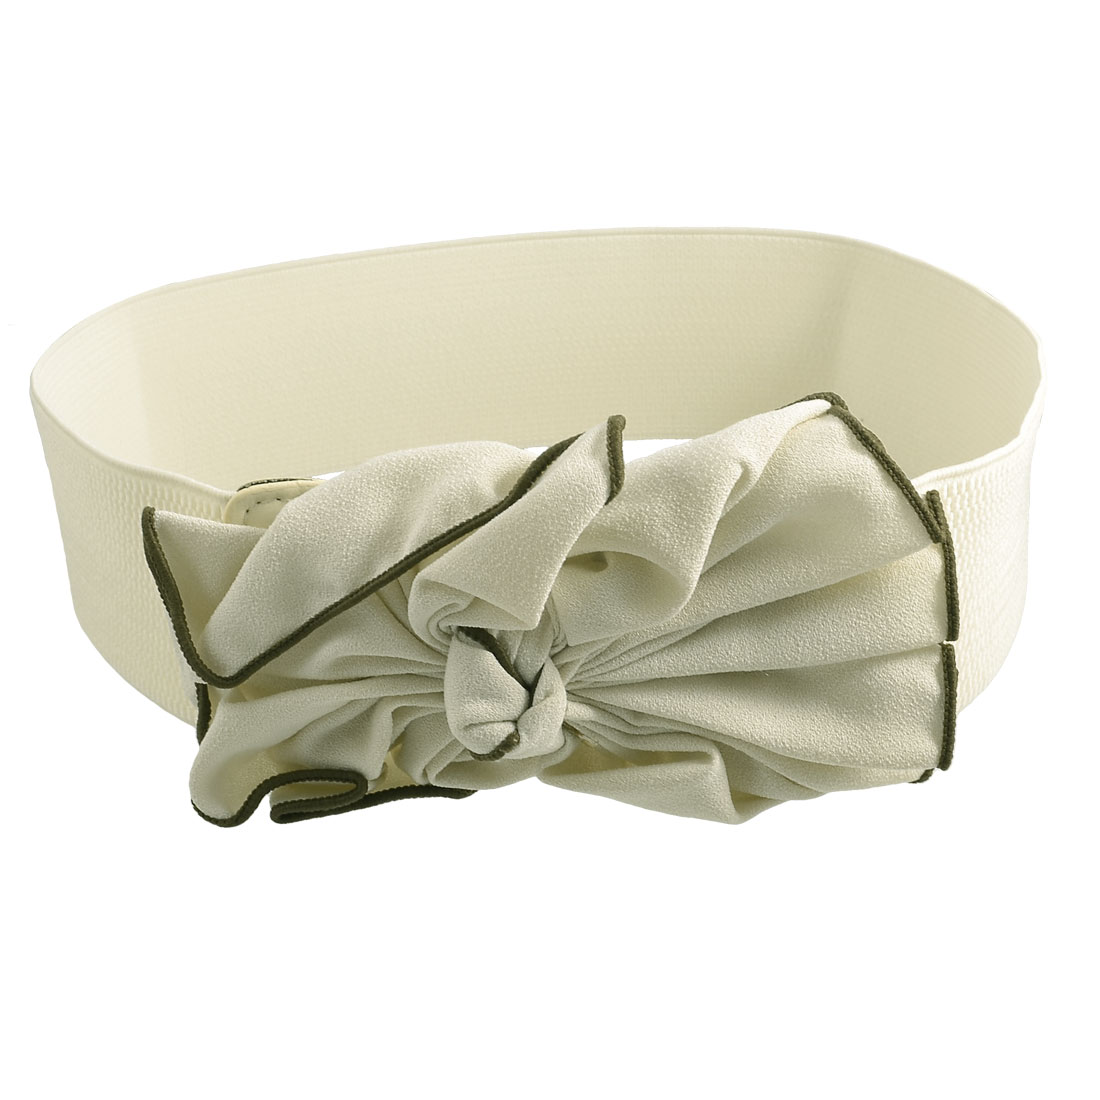 Ladies Beige Trim Ripple Bowknot Accent Press Stud Elastic Waist Band Belt